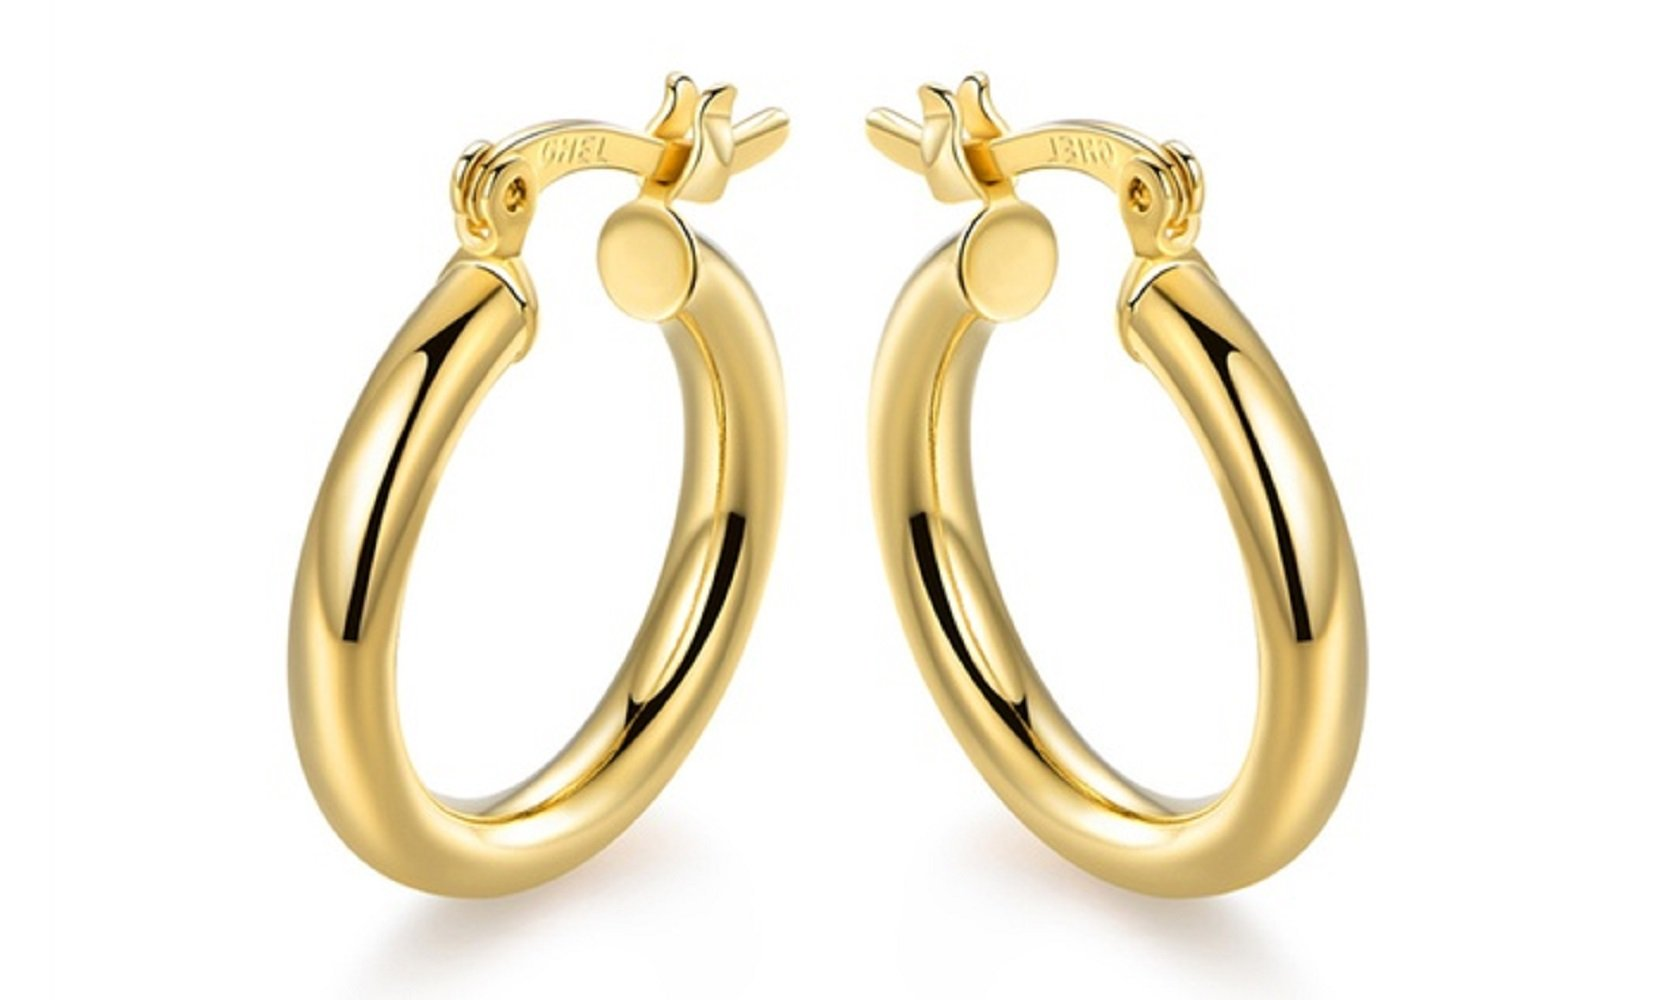 10K Solid Gold 3X20MM thick Round Hoop Earrings- French Lock Closure